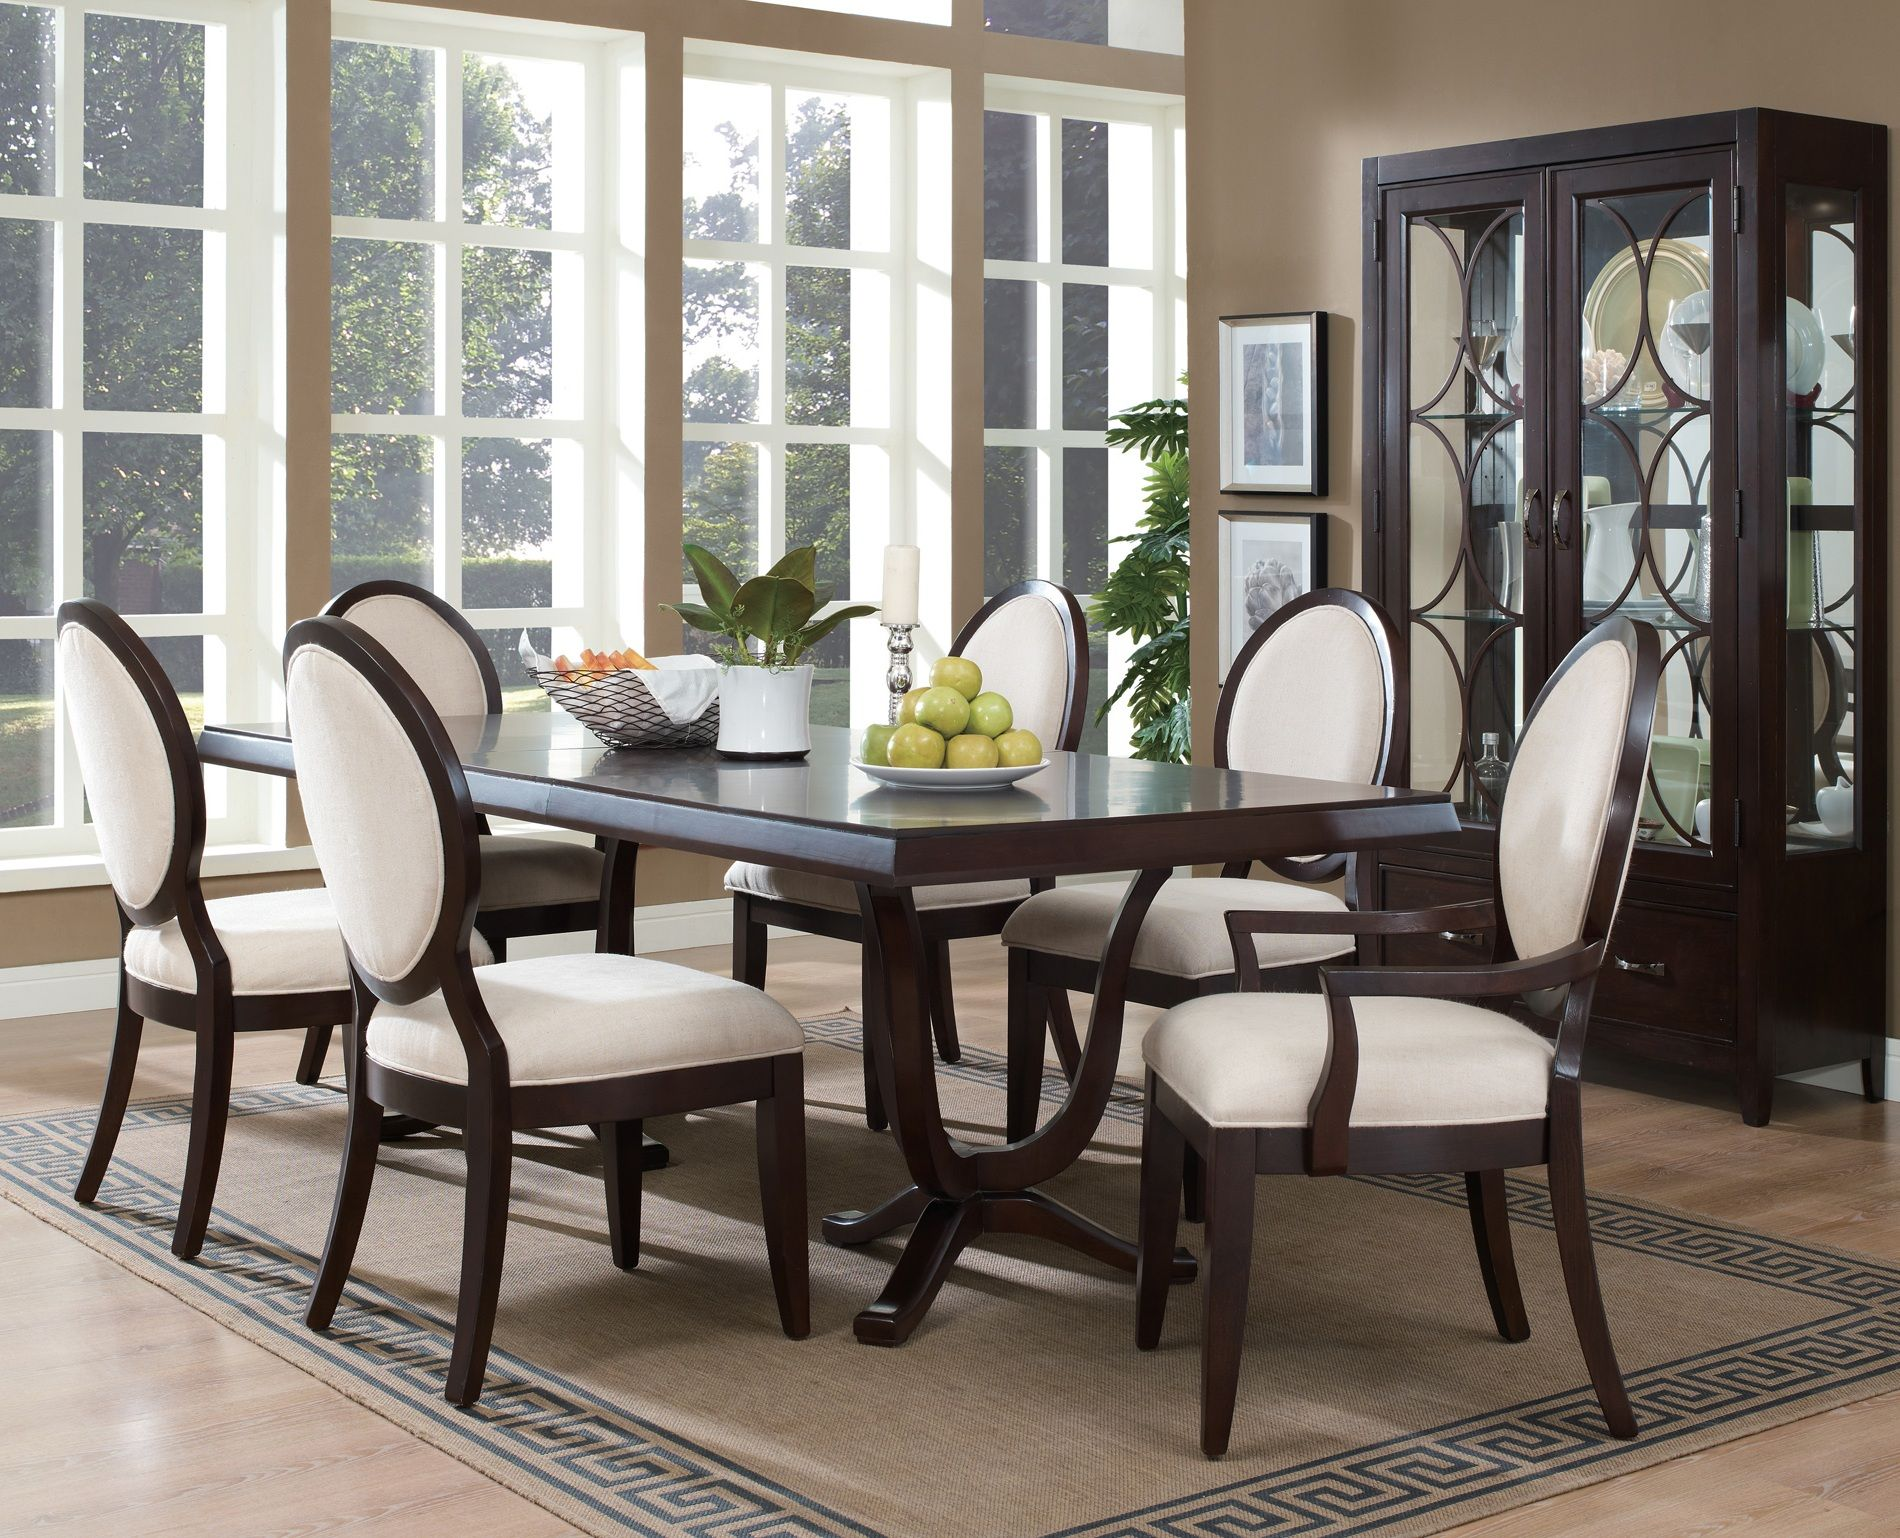 Décor for Formal Dining Room Designs | Room, Wooden dining tables